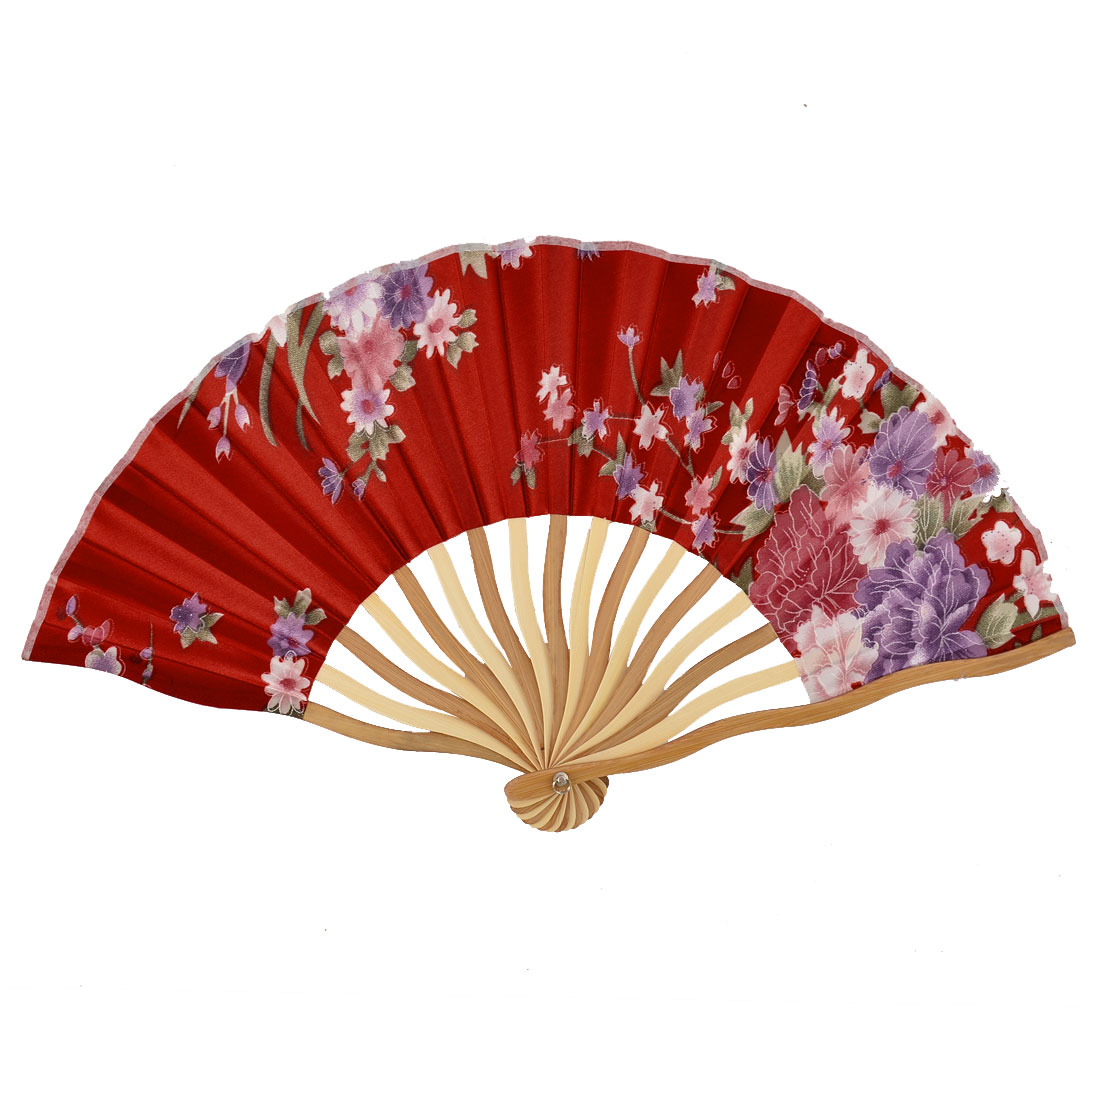 Bamboo Ribs Flower Pattern Summer Cool Foldable Dancing Hand Fan Red w Pouch